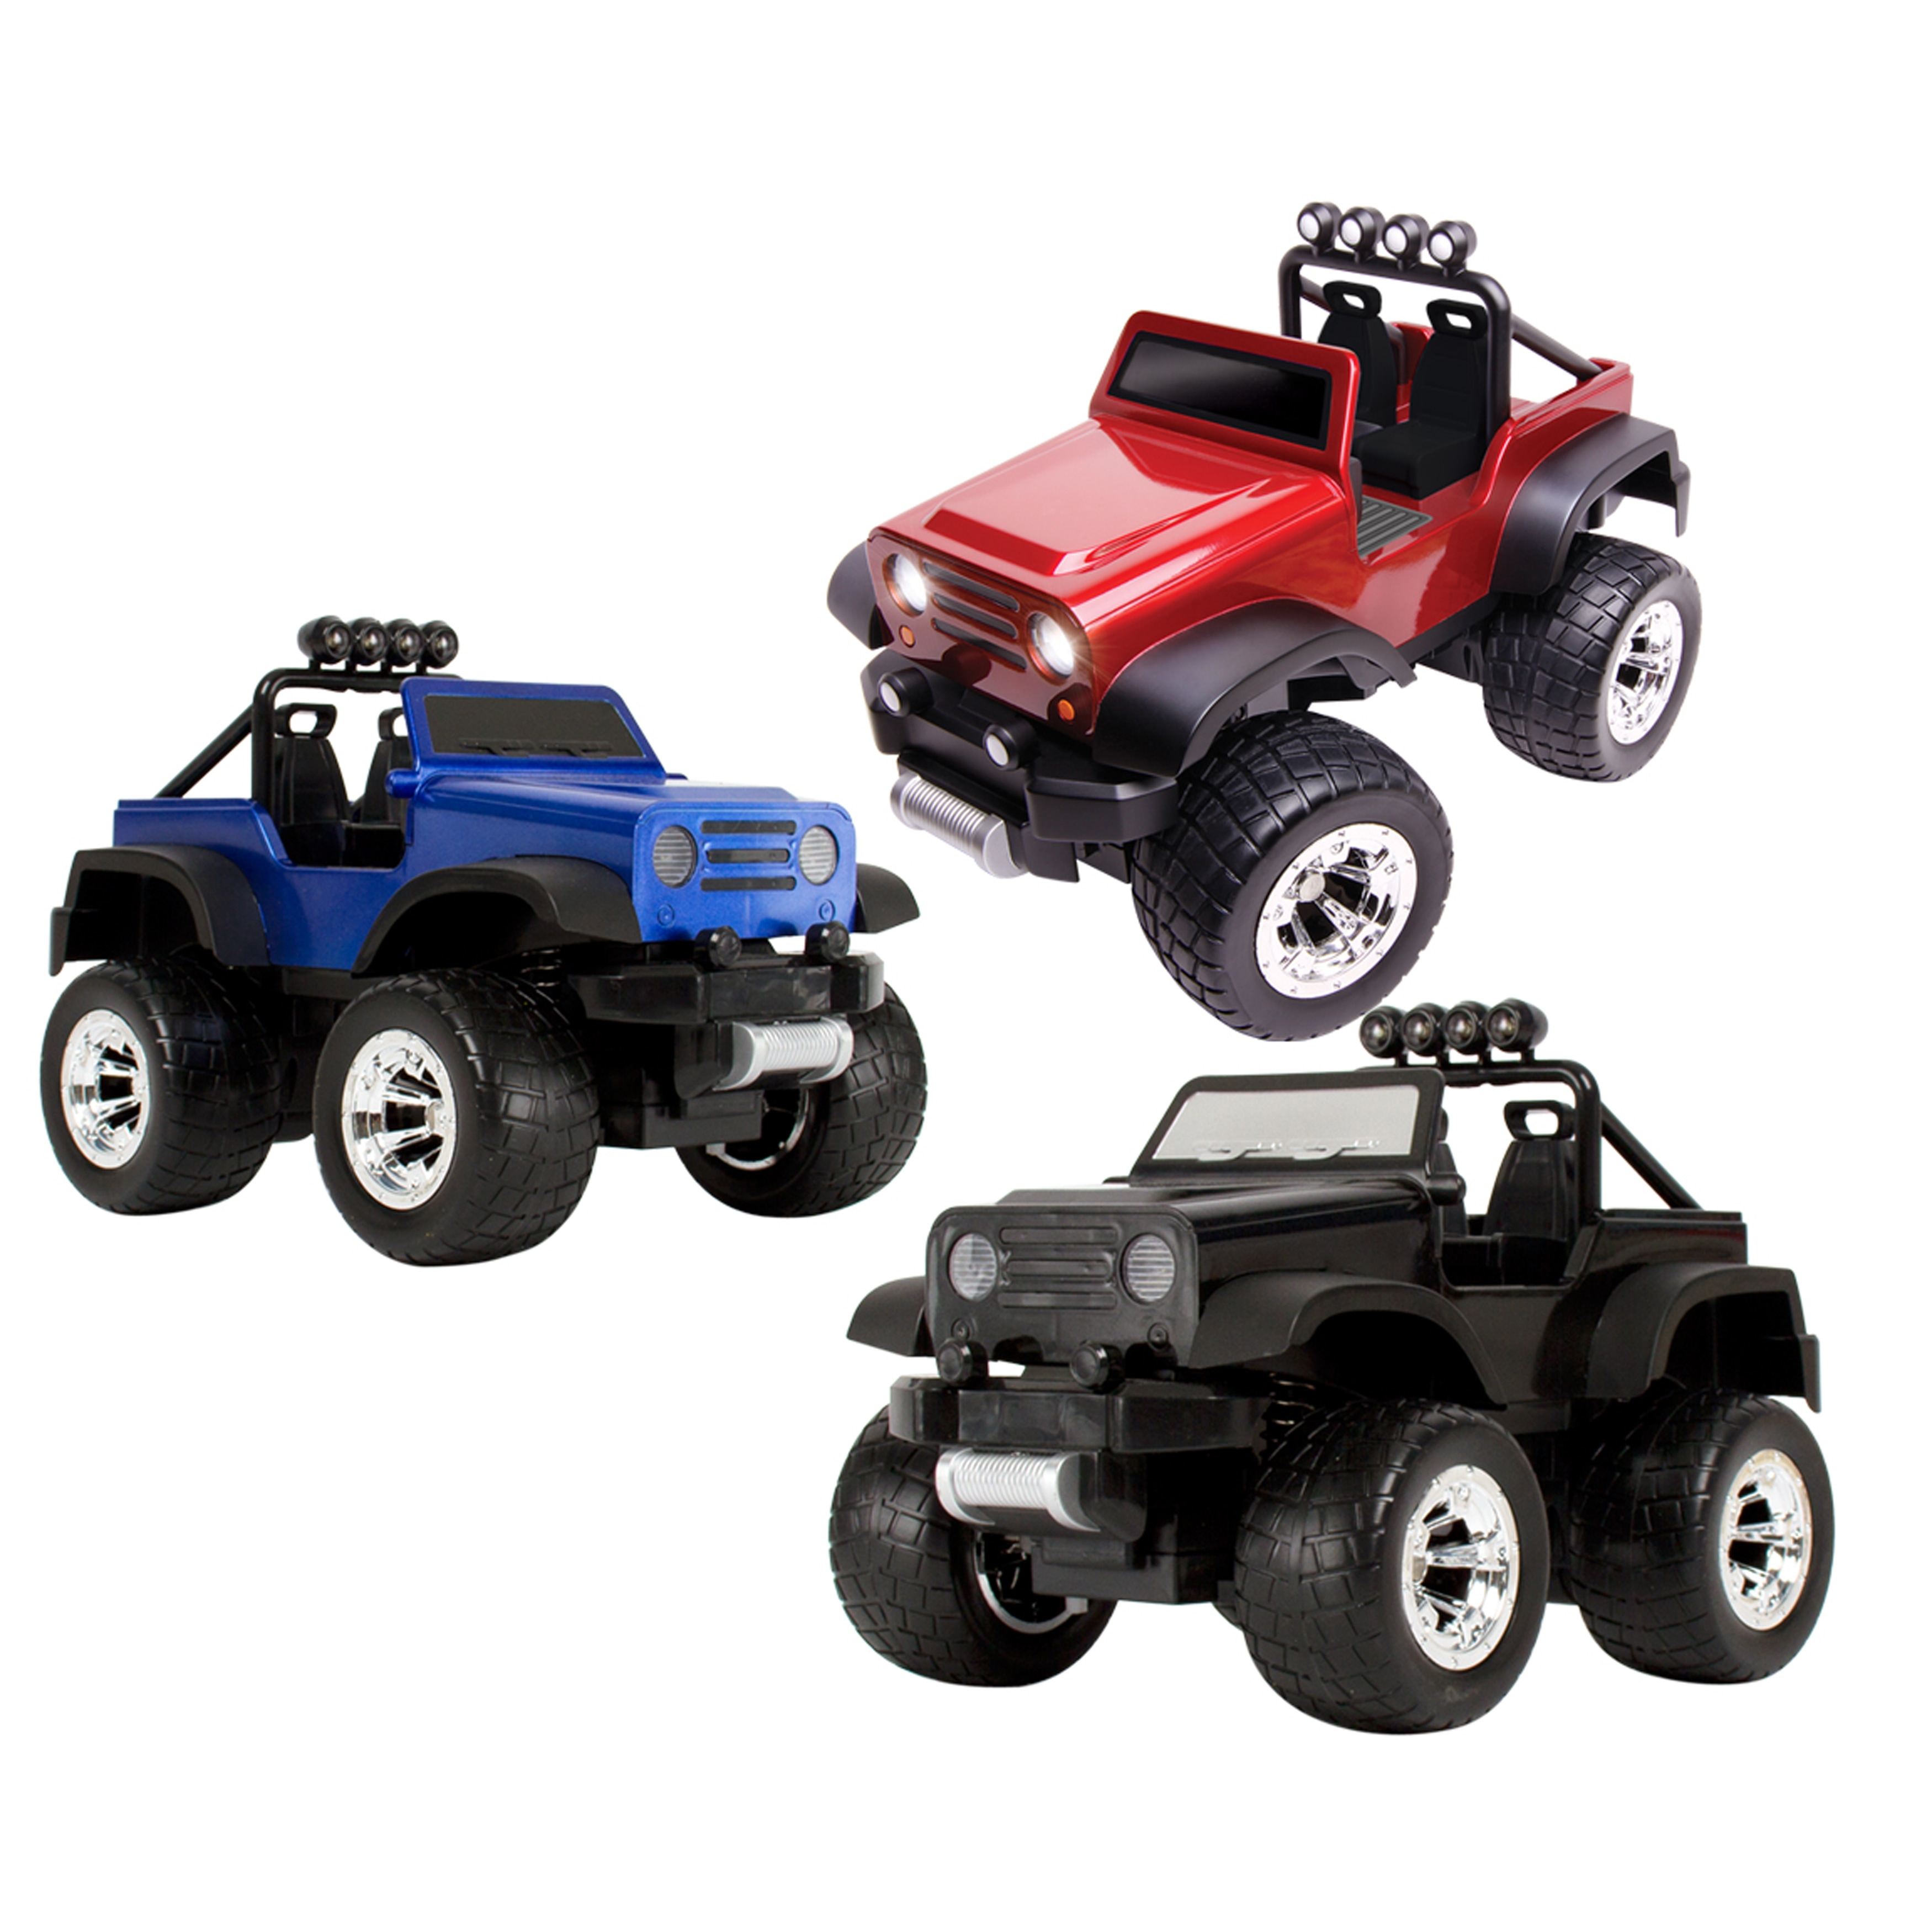 Blue Hat Remote controlled f road Safari Truck with LED Lights